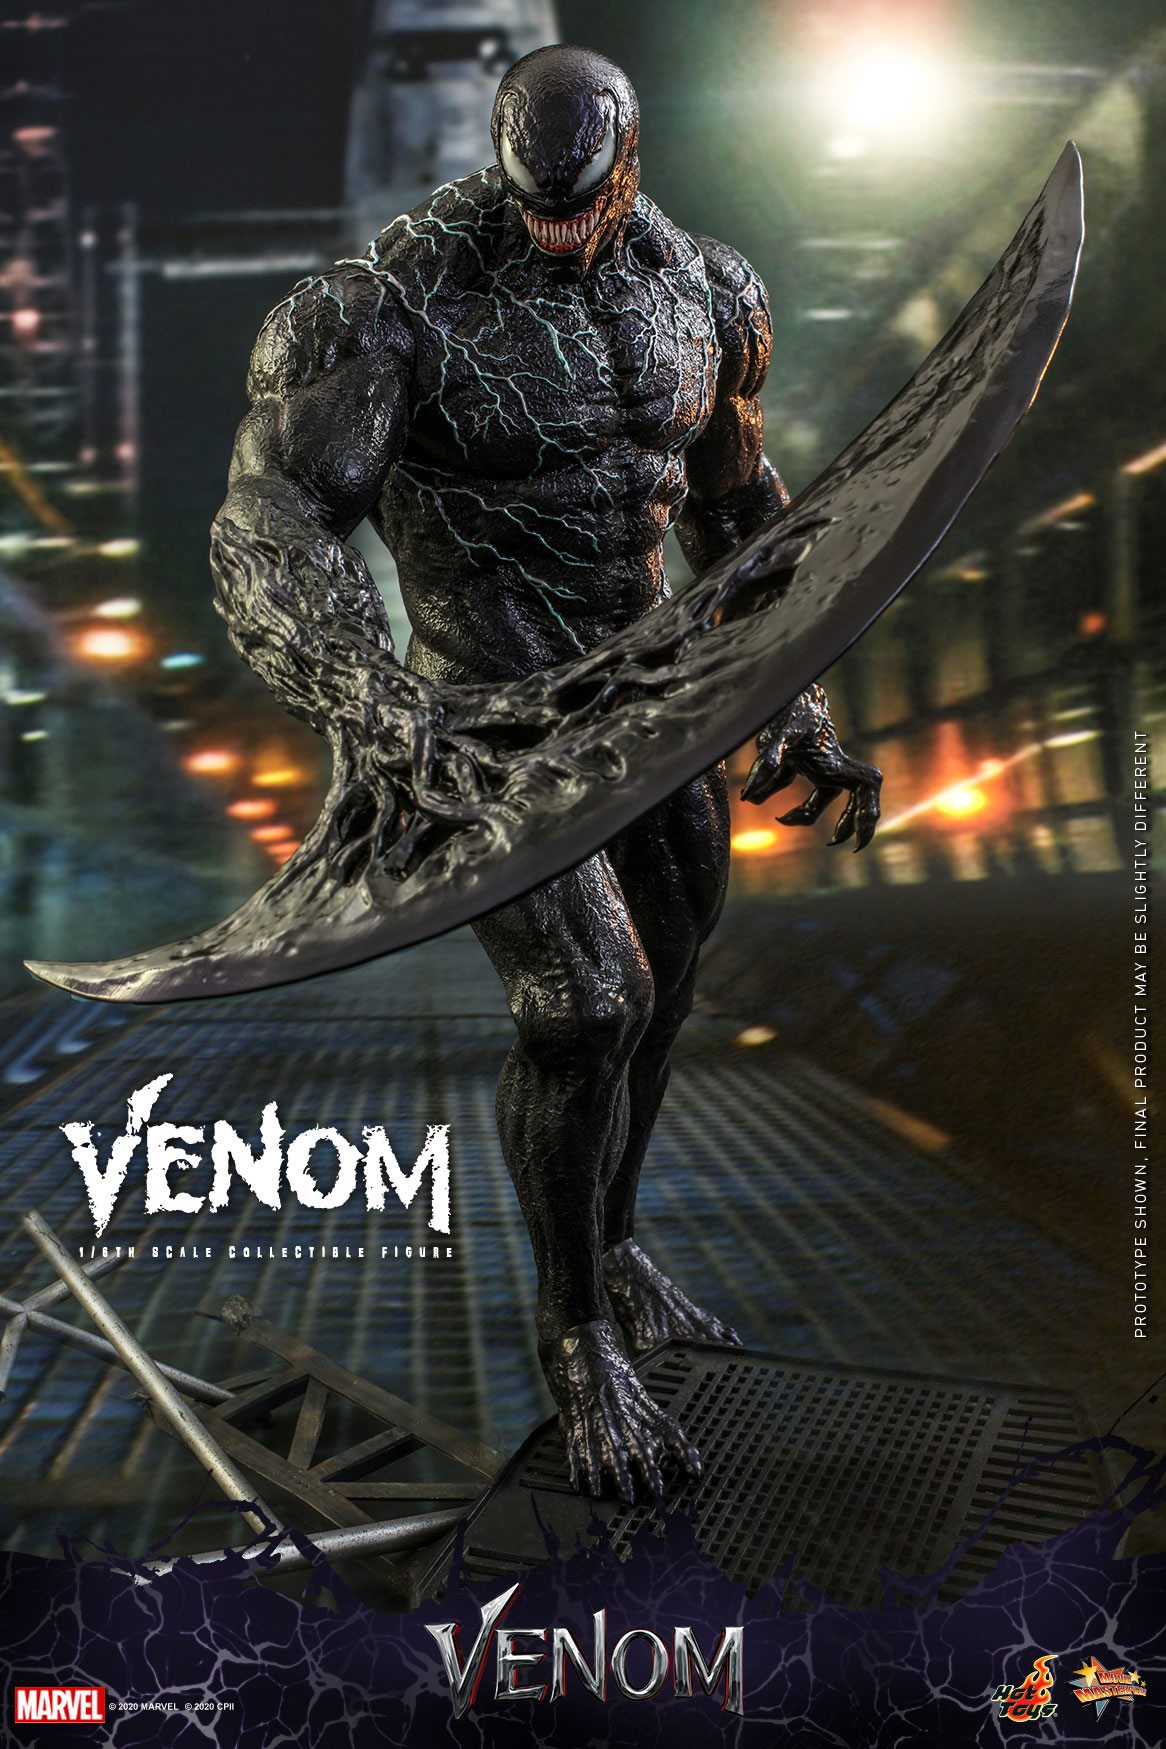 First Look Hot Toys Reveals Their Venom Figure Future Of The Force